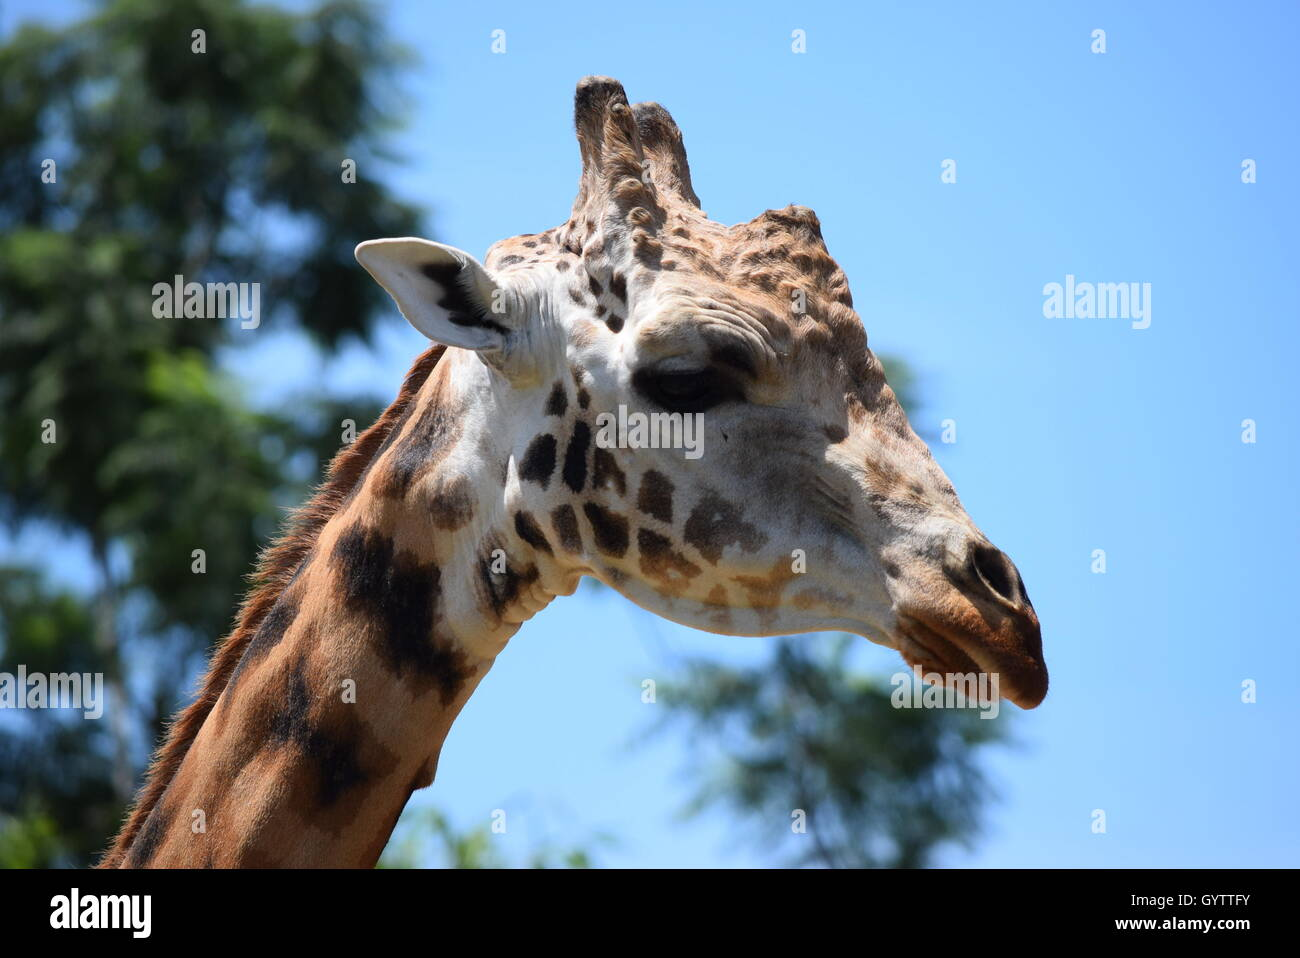 giraffe portrait at aurora zoo guatemala stock photo royalty